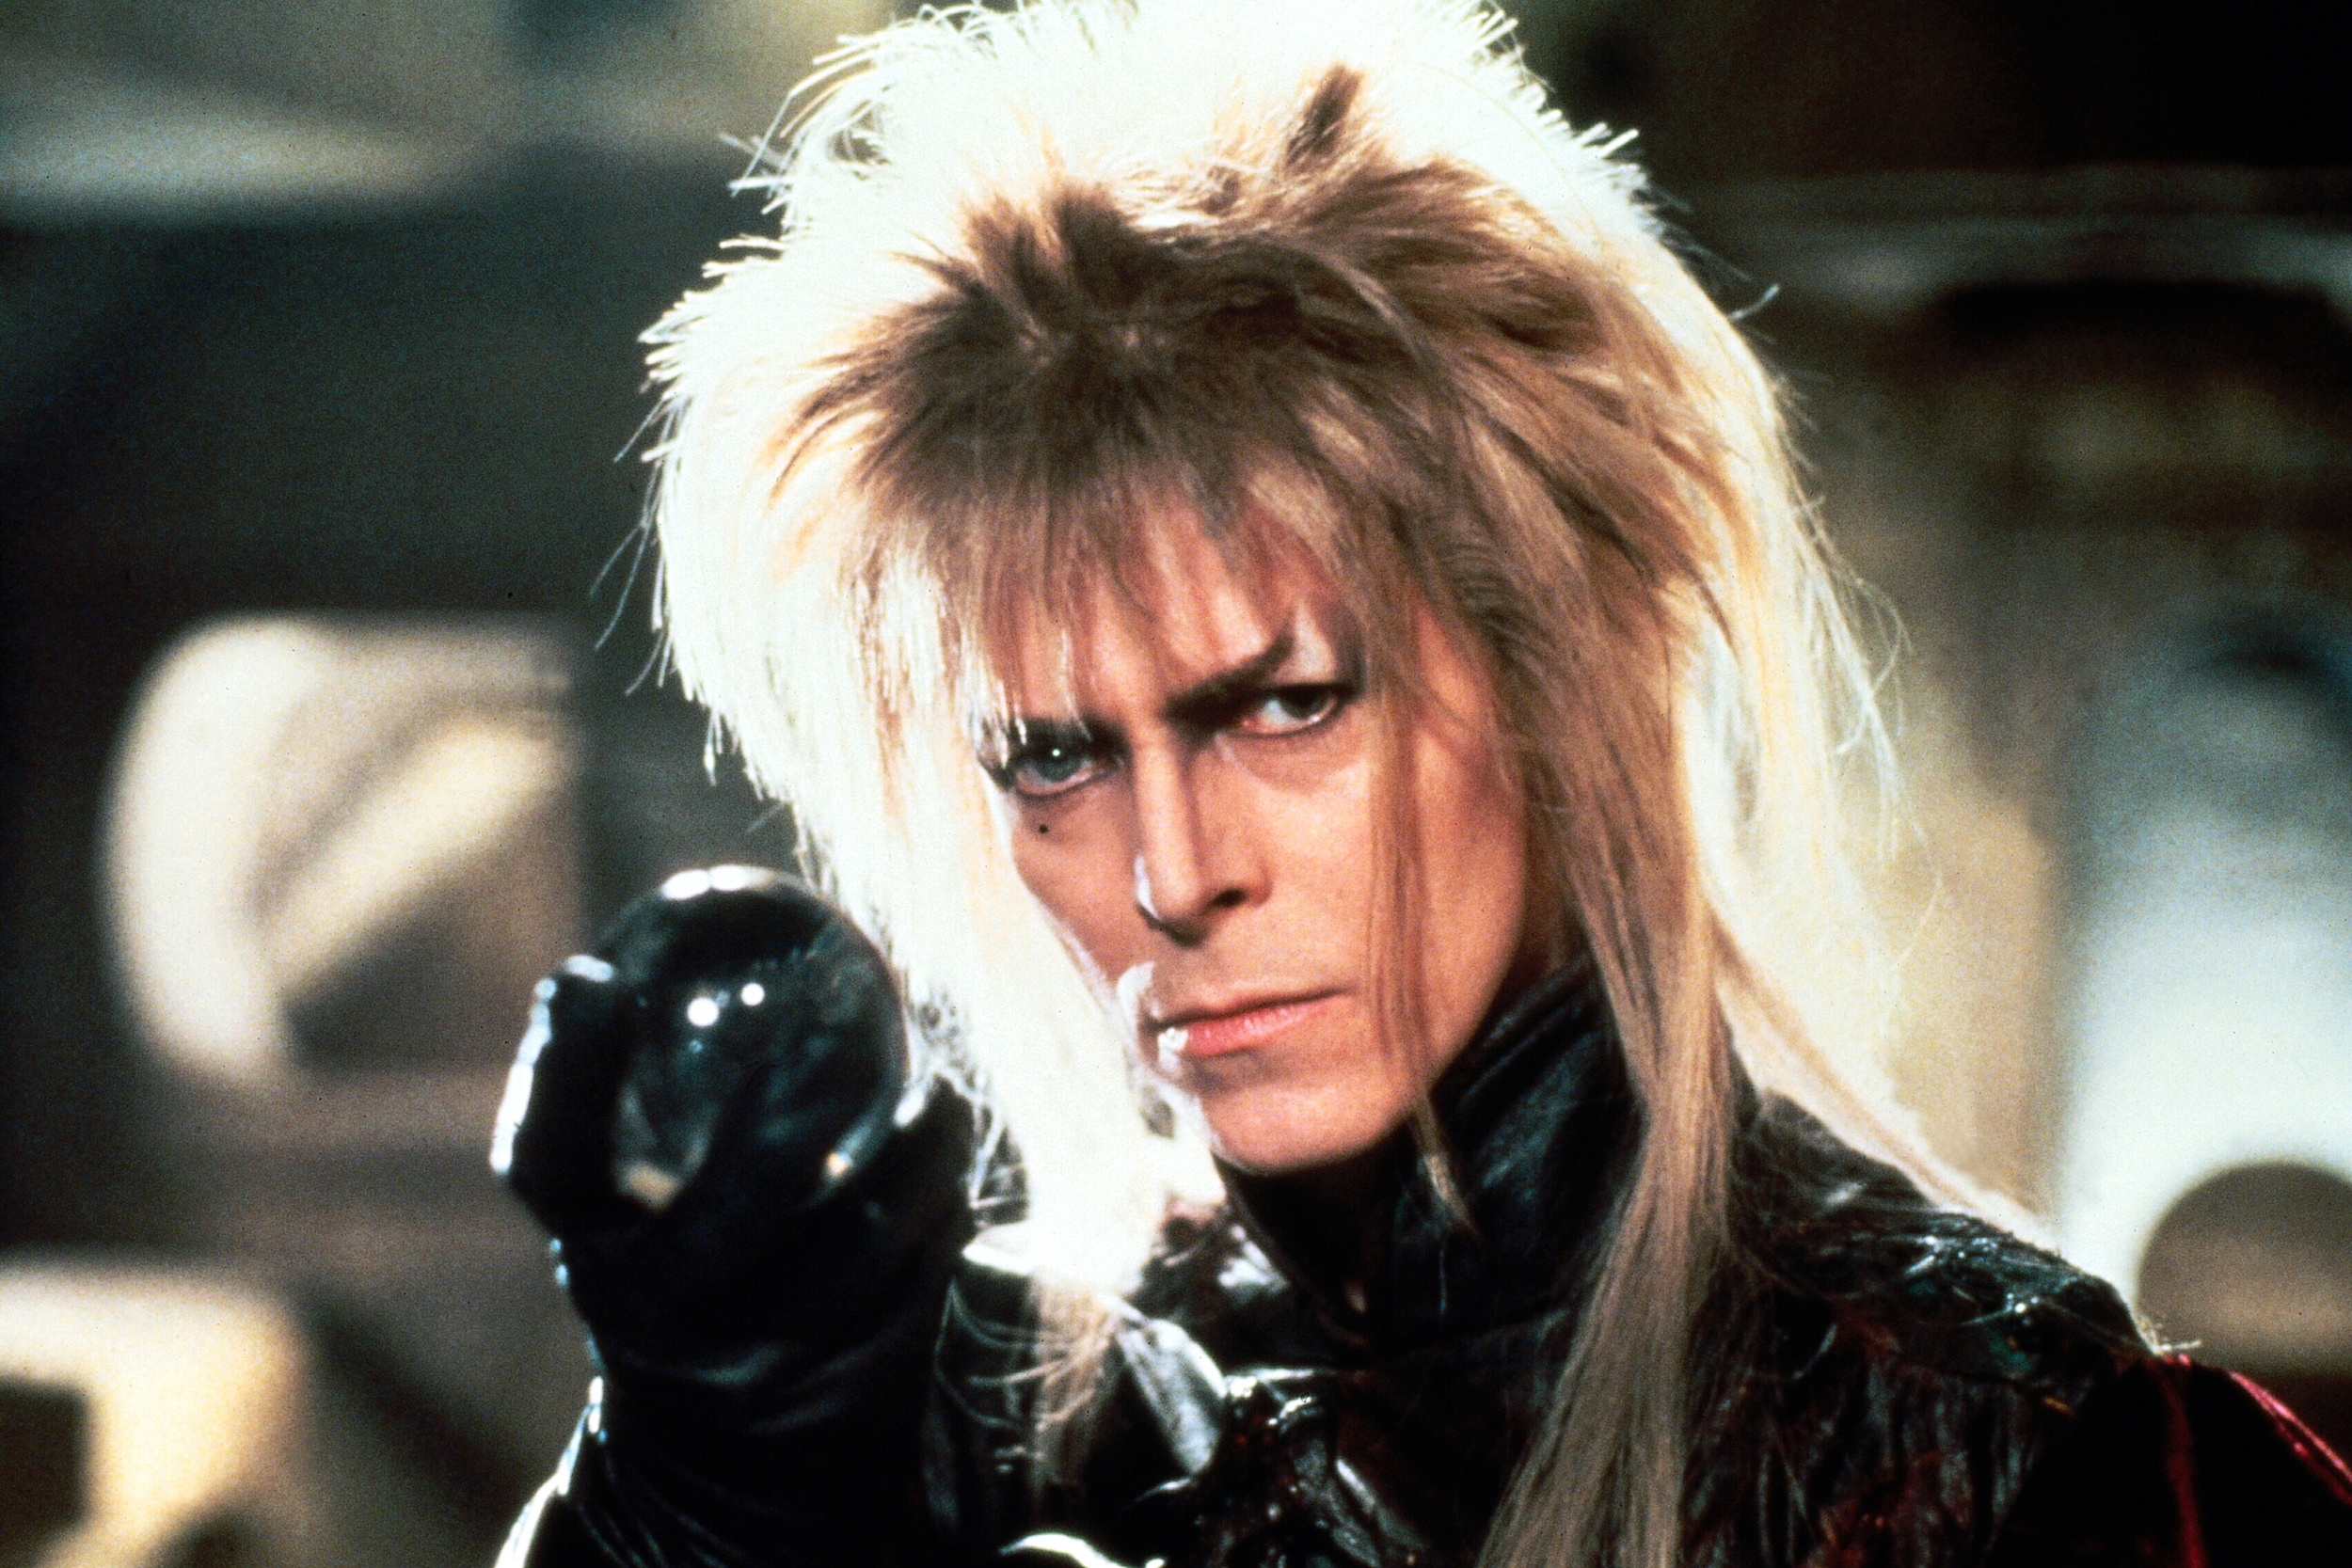 David Bowie as Jareth in Labryinth